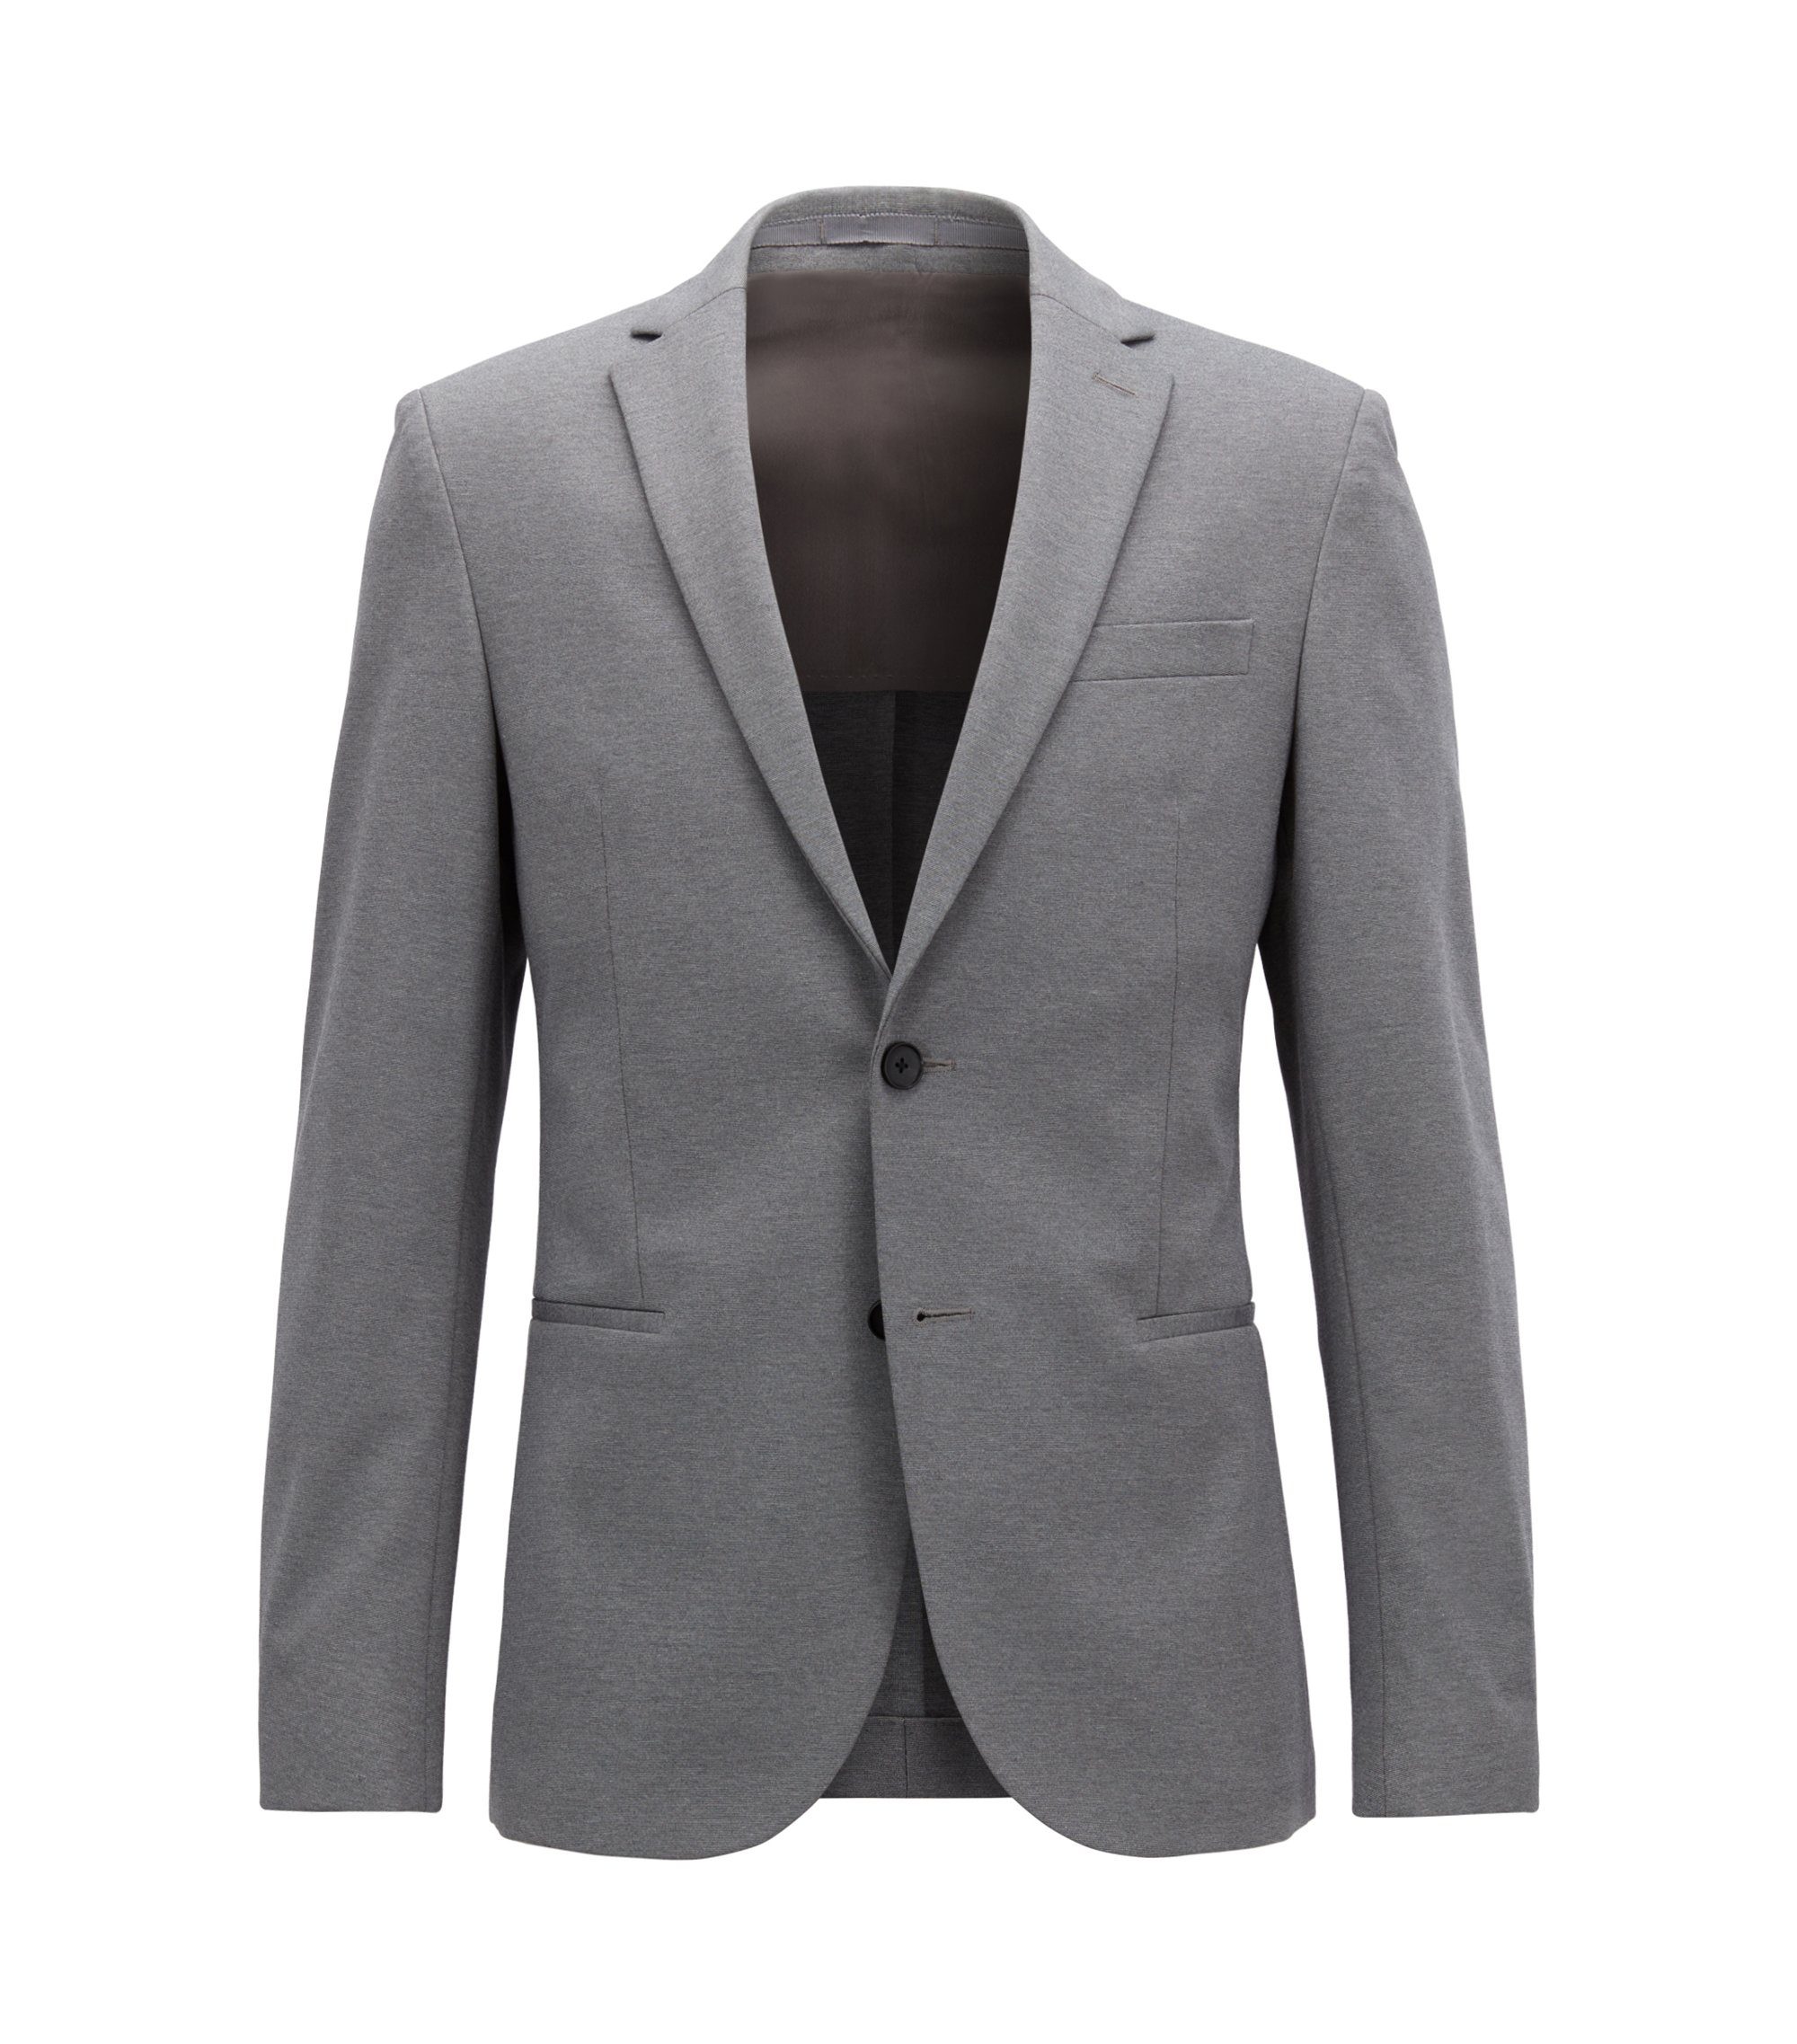 Blazer Slim Fit en coton stretch mélangé, Gris